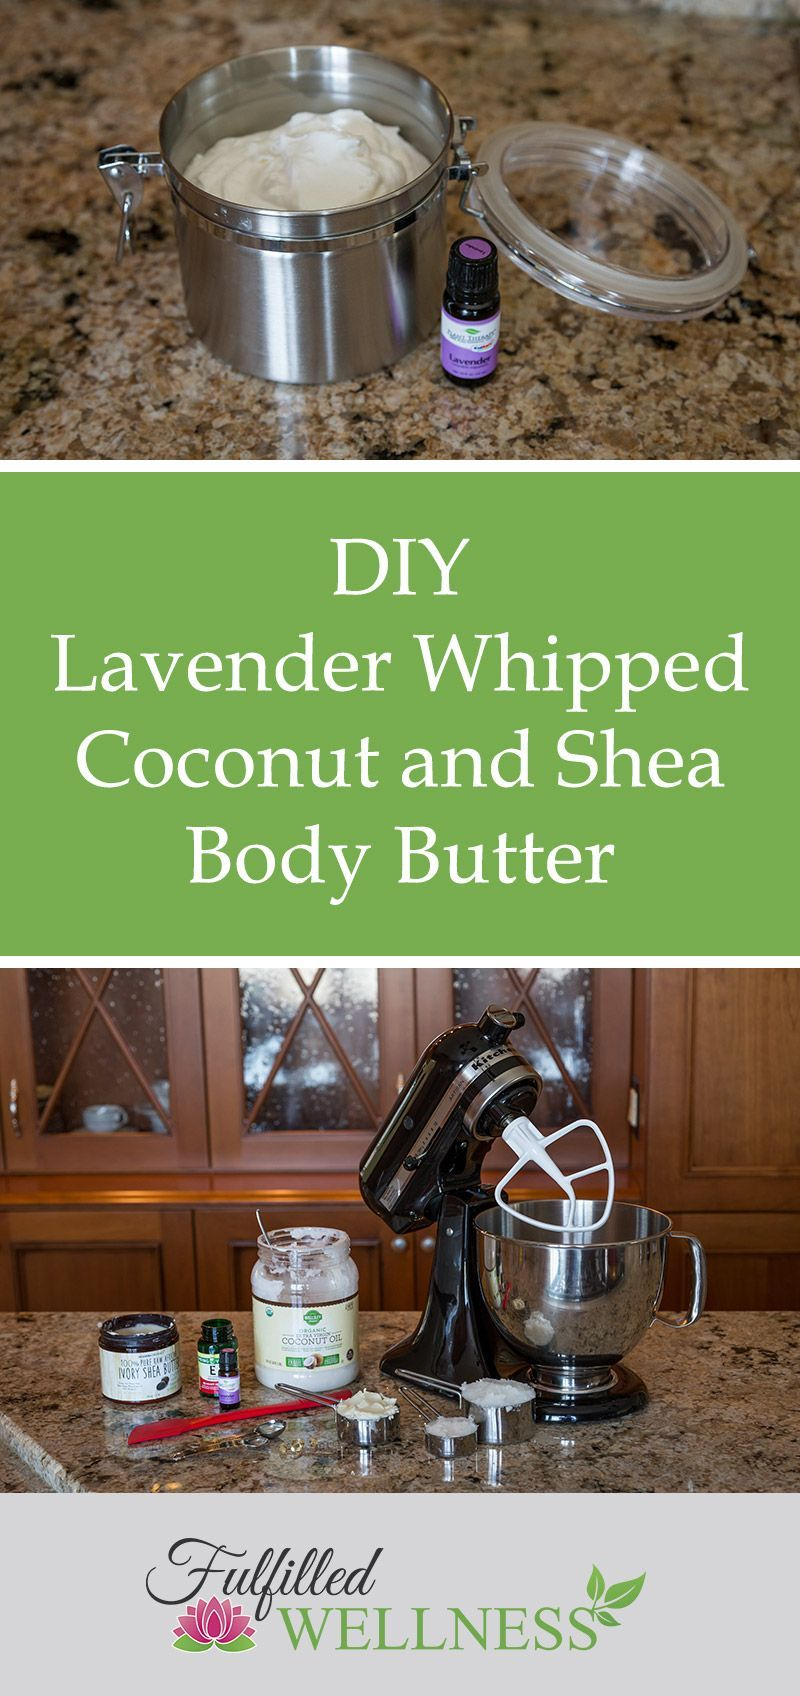 Diy lavender whipped coconut and shea body butter recipe